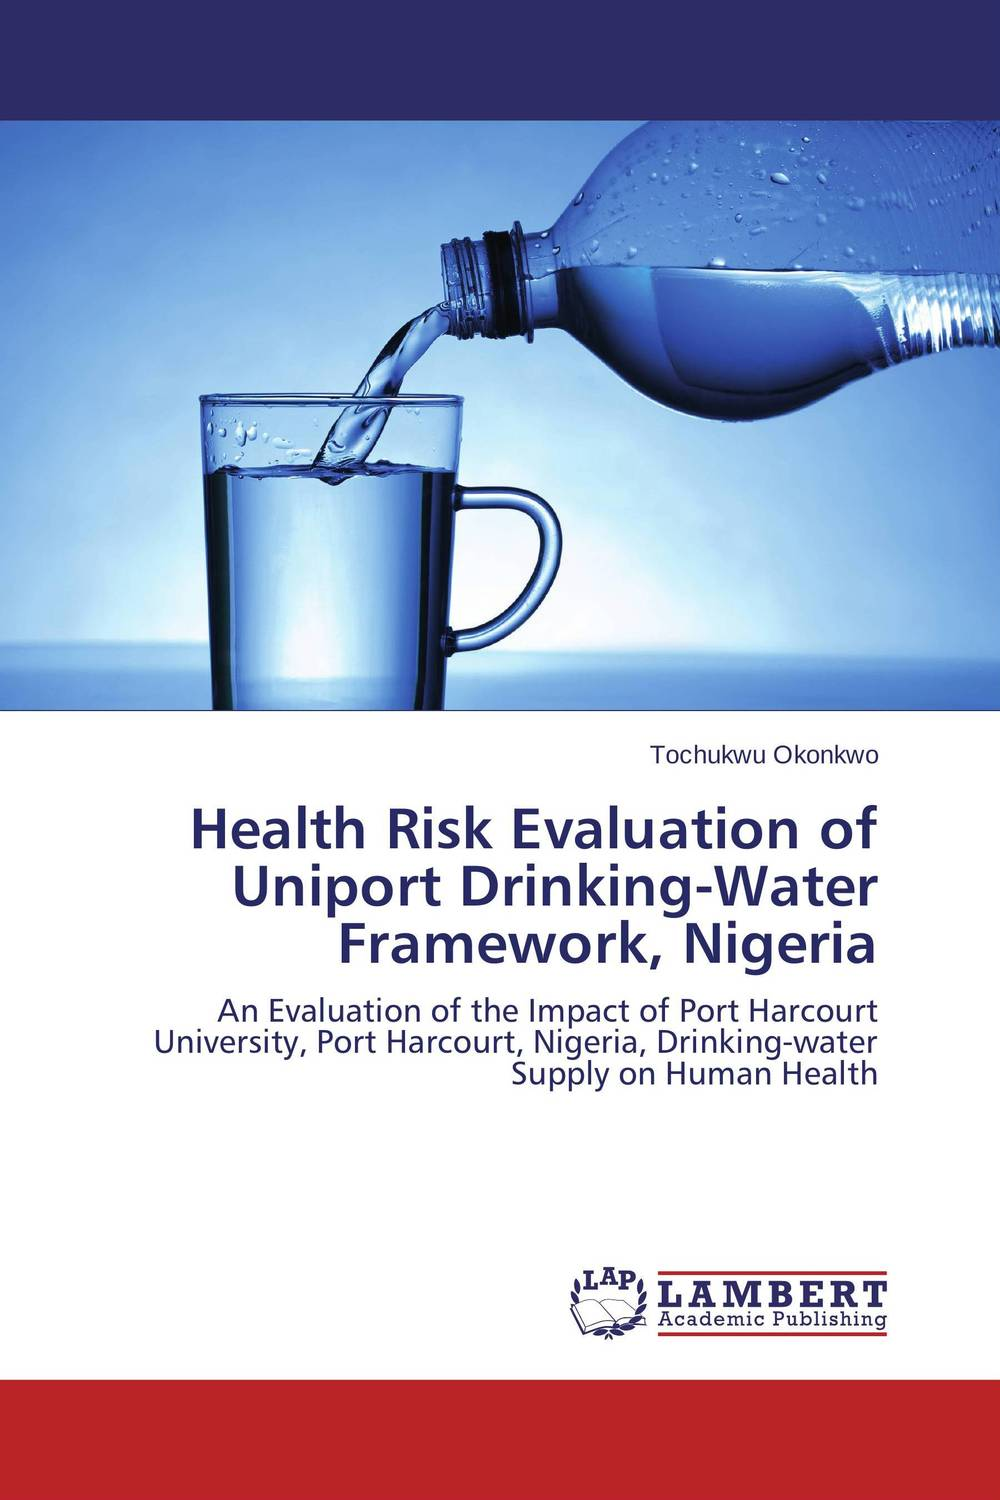 Health Risk Evaluation of Uniport Drinking-Water Framework, Nigeria physicochemical and bacteriological water quality assessment